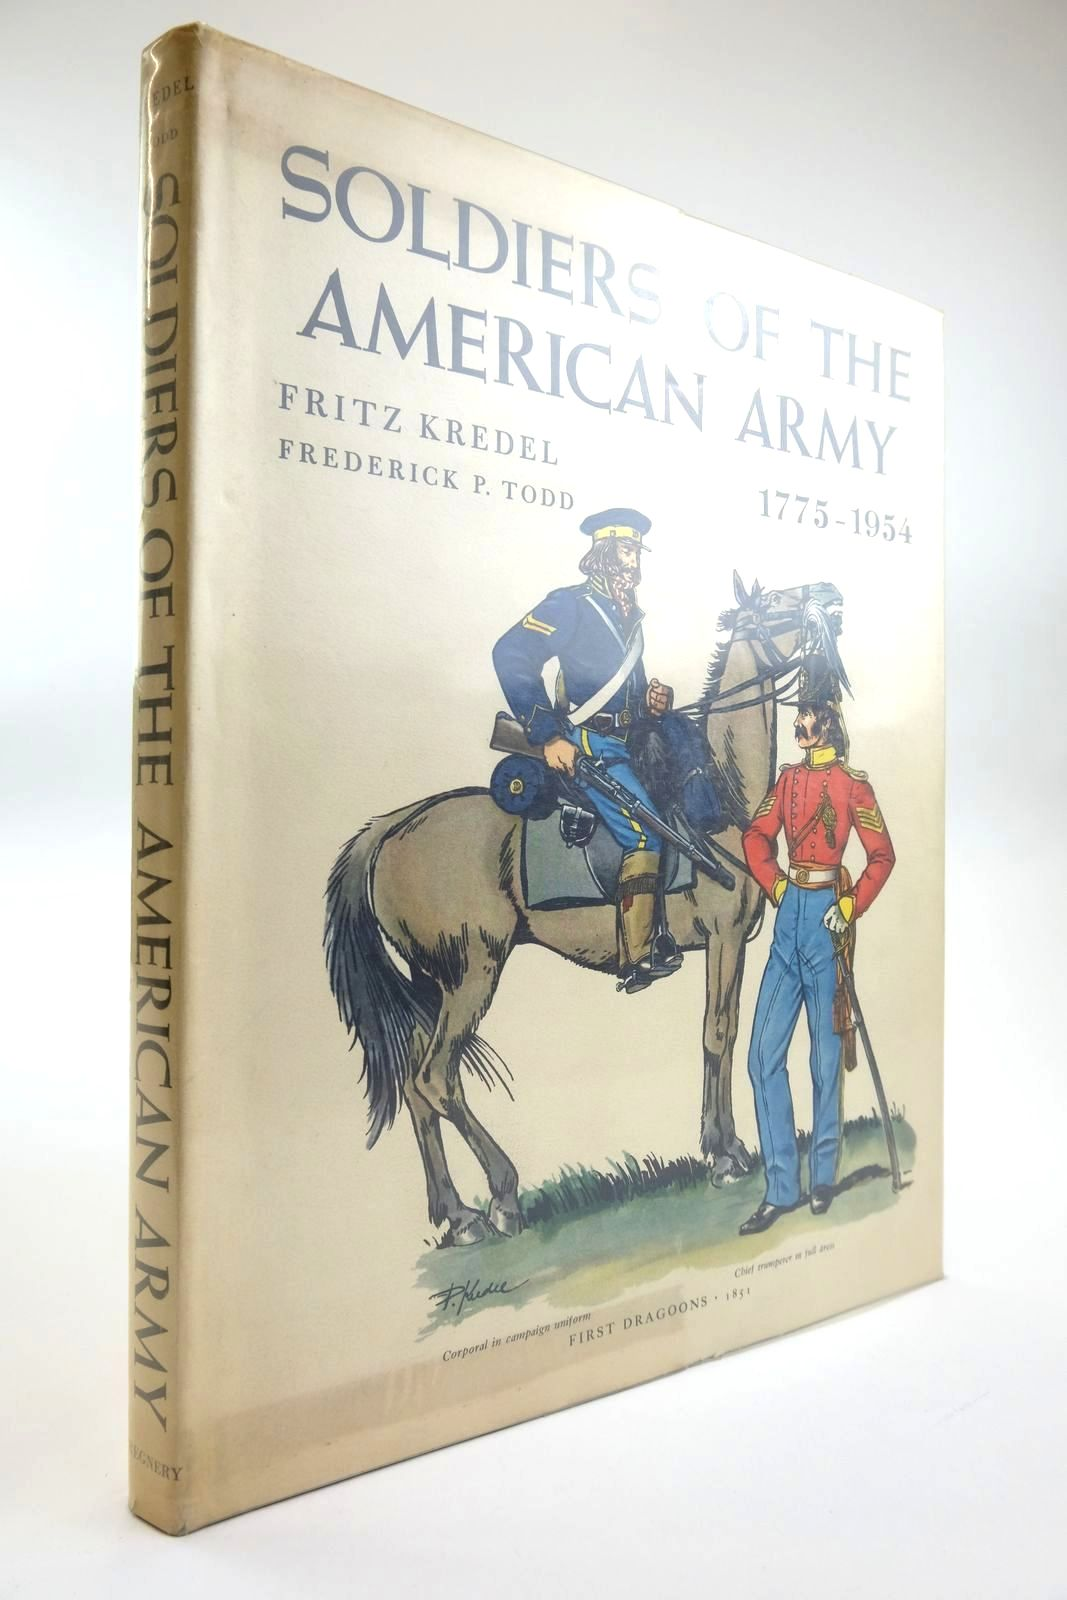 Photo of SOLDIERS OF THE AMERICAN ARMY 1775 - 1954- Stock Number: 2133478